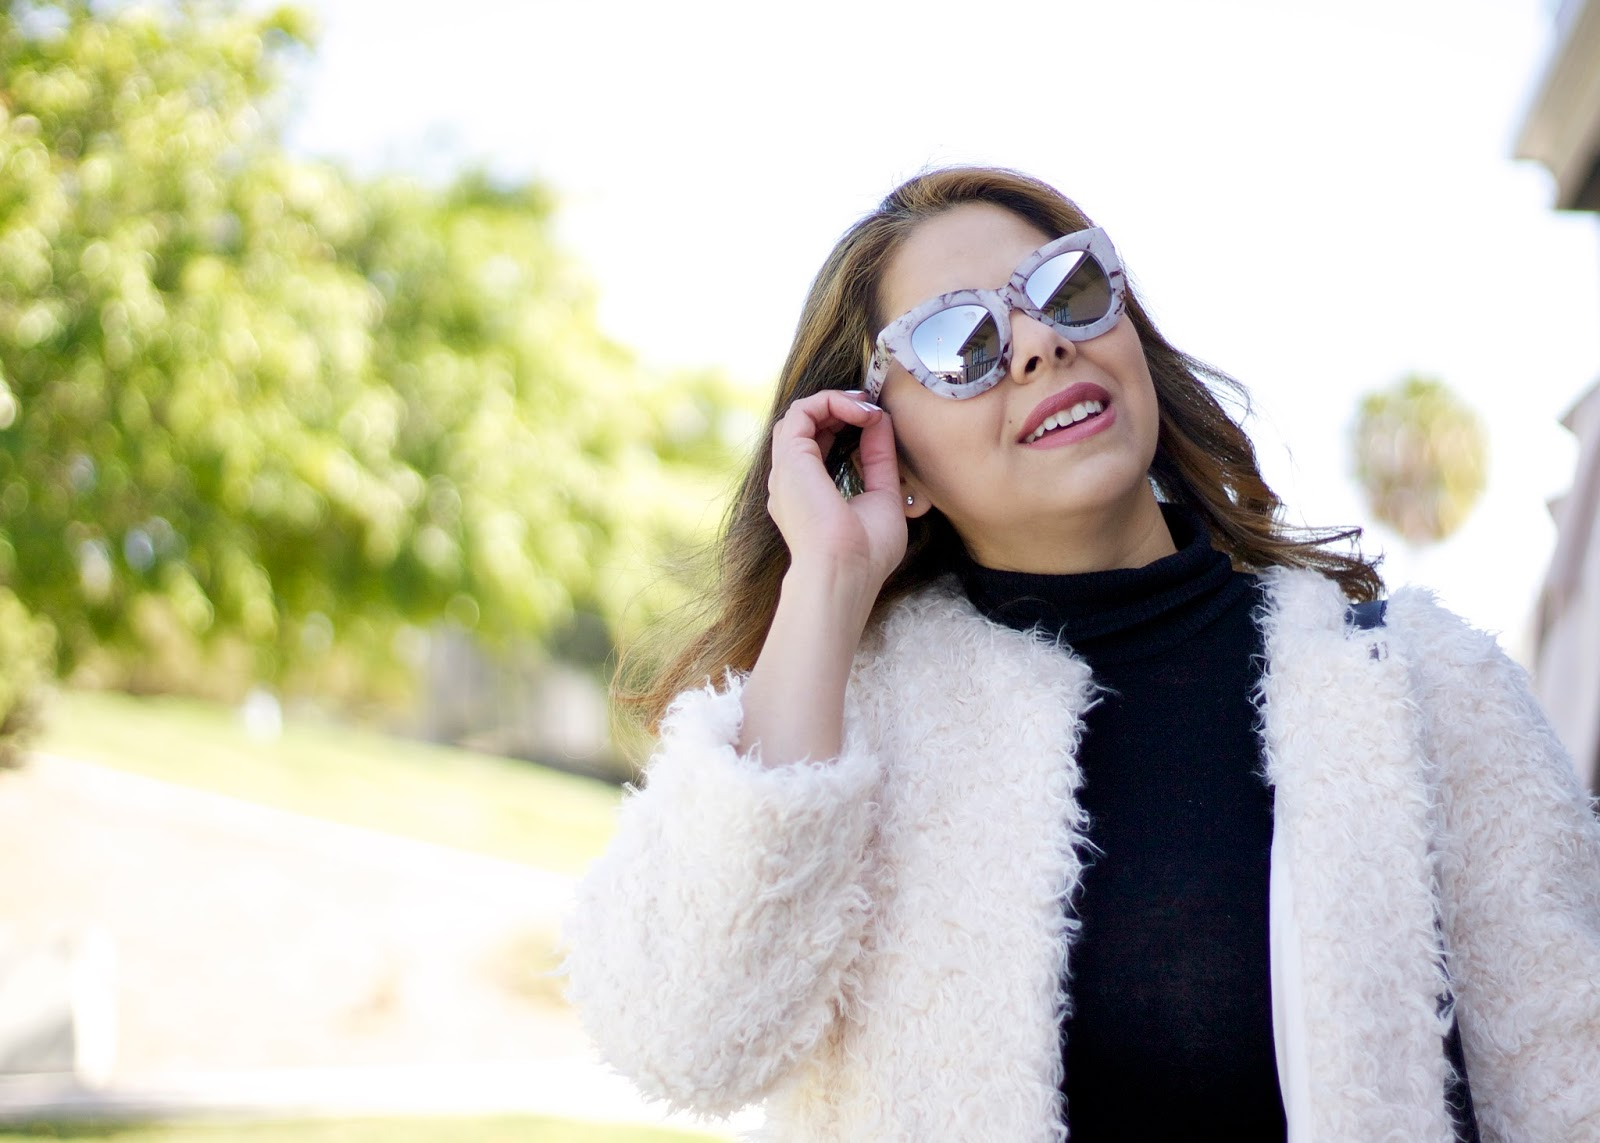 Quay marble look sunnies, mirrored sunglasses, chunky sunglasses, cool sunglasses for sprin 2016